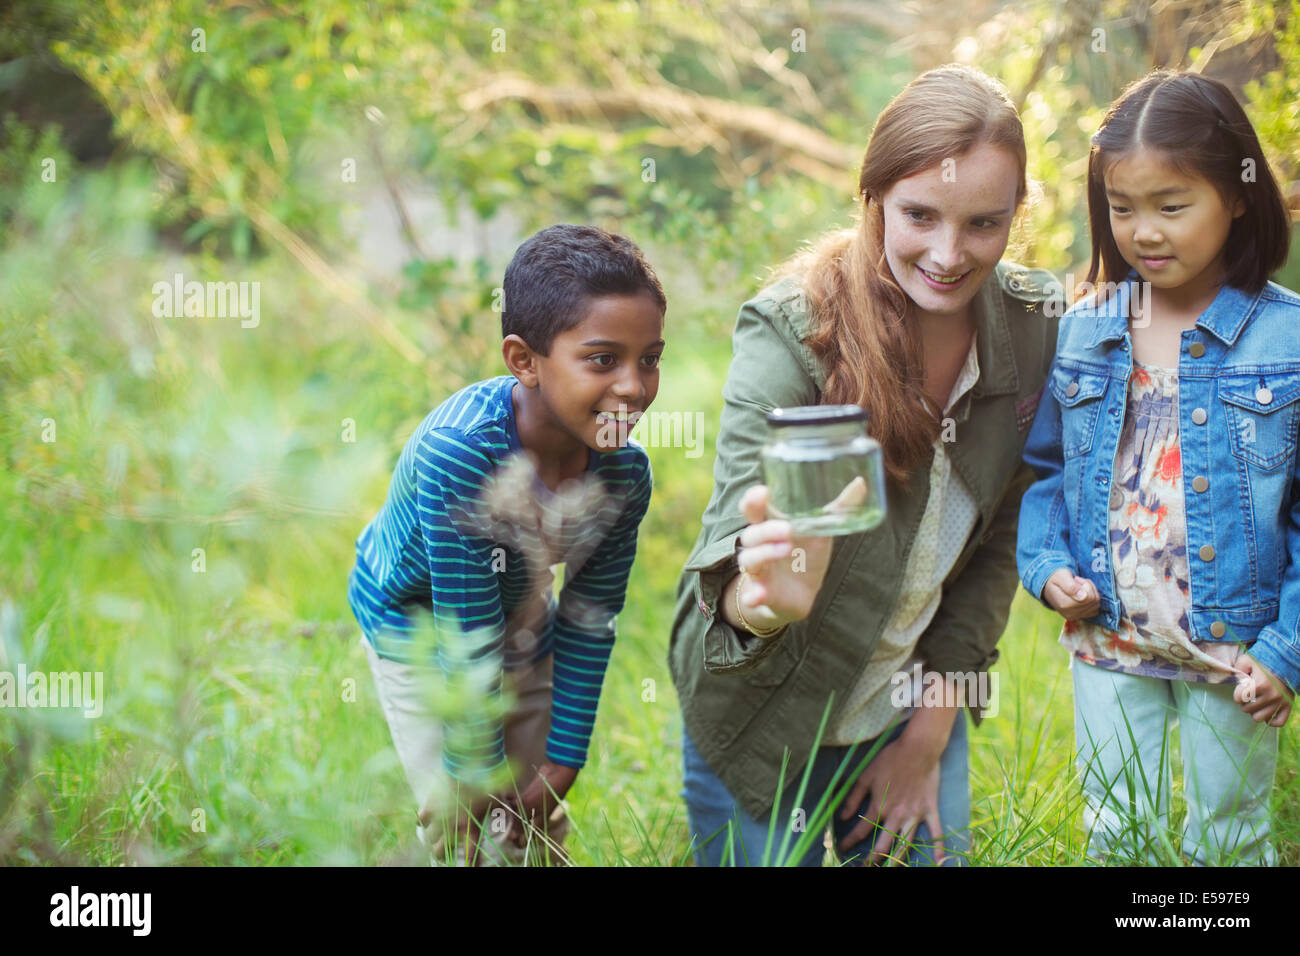 Student and teacher examining insect in jar - Stock Image